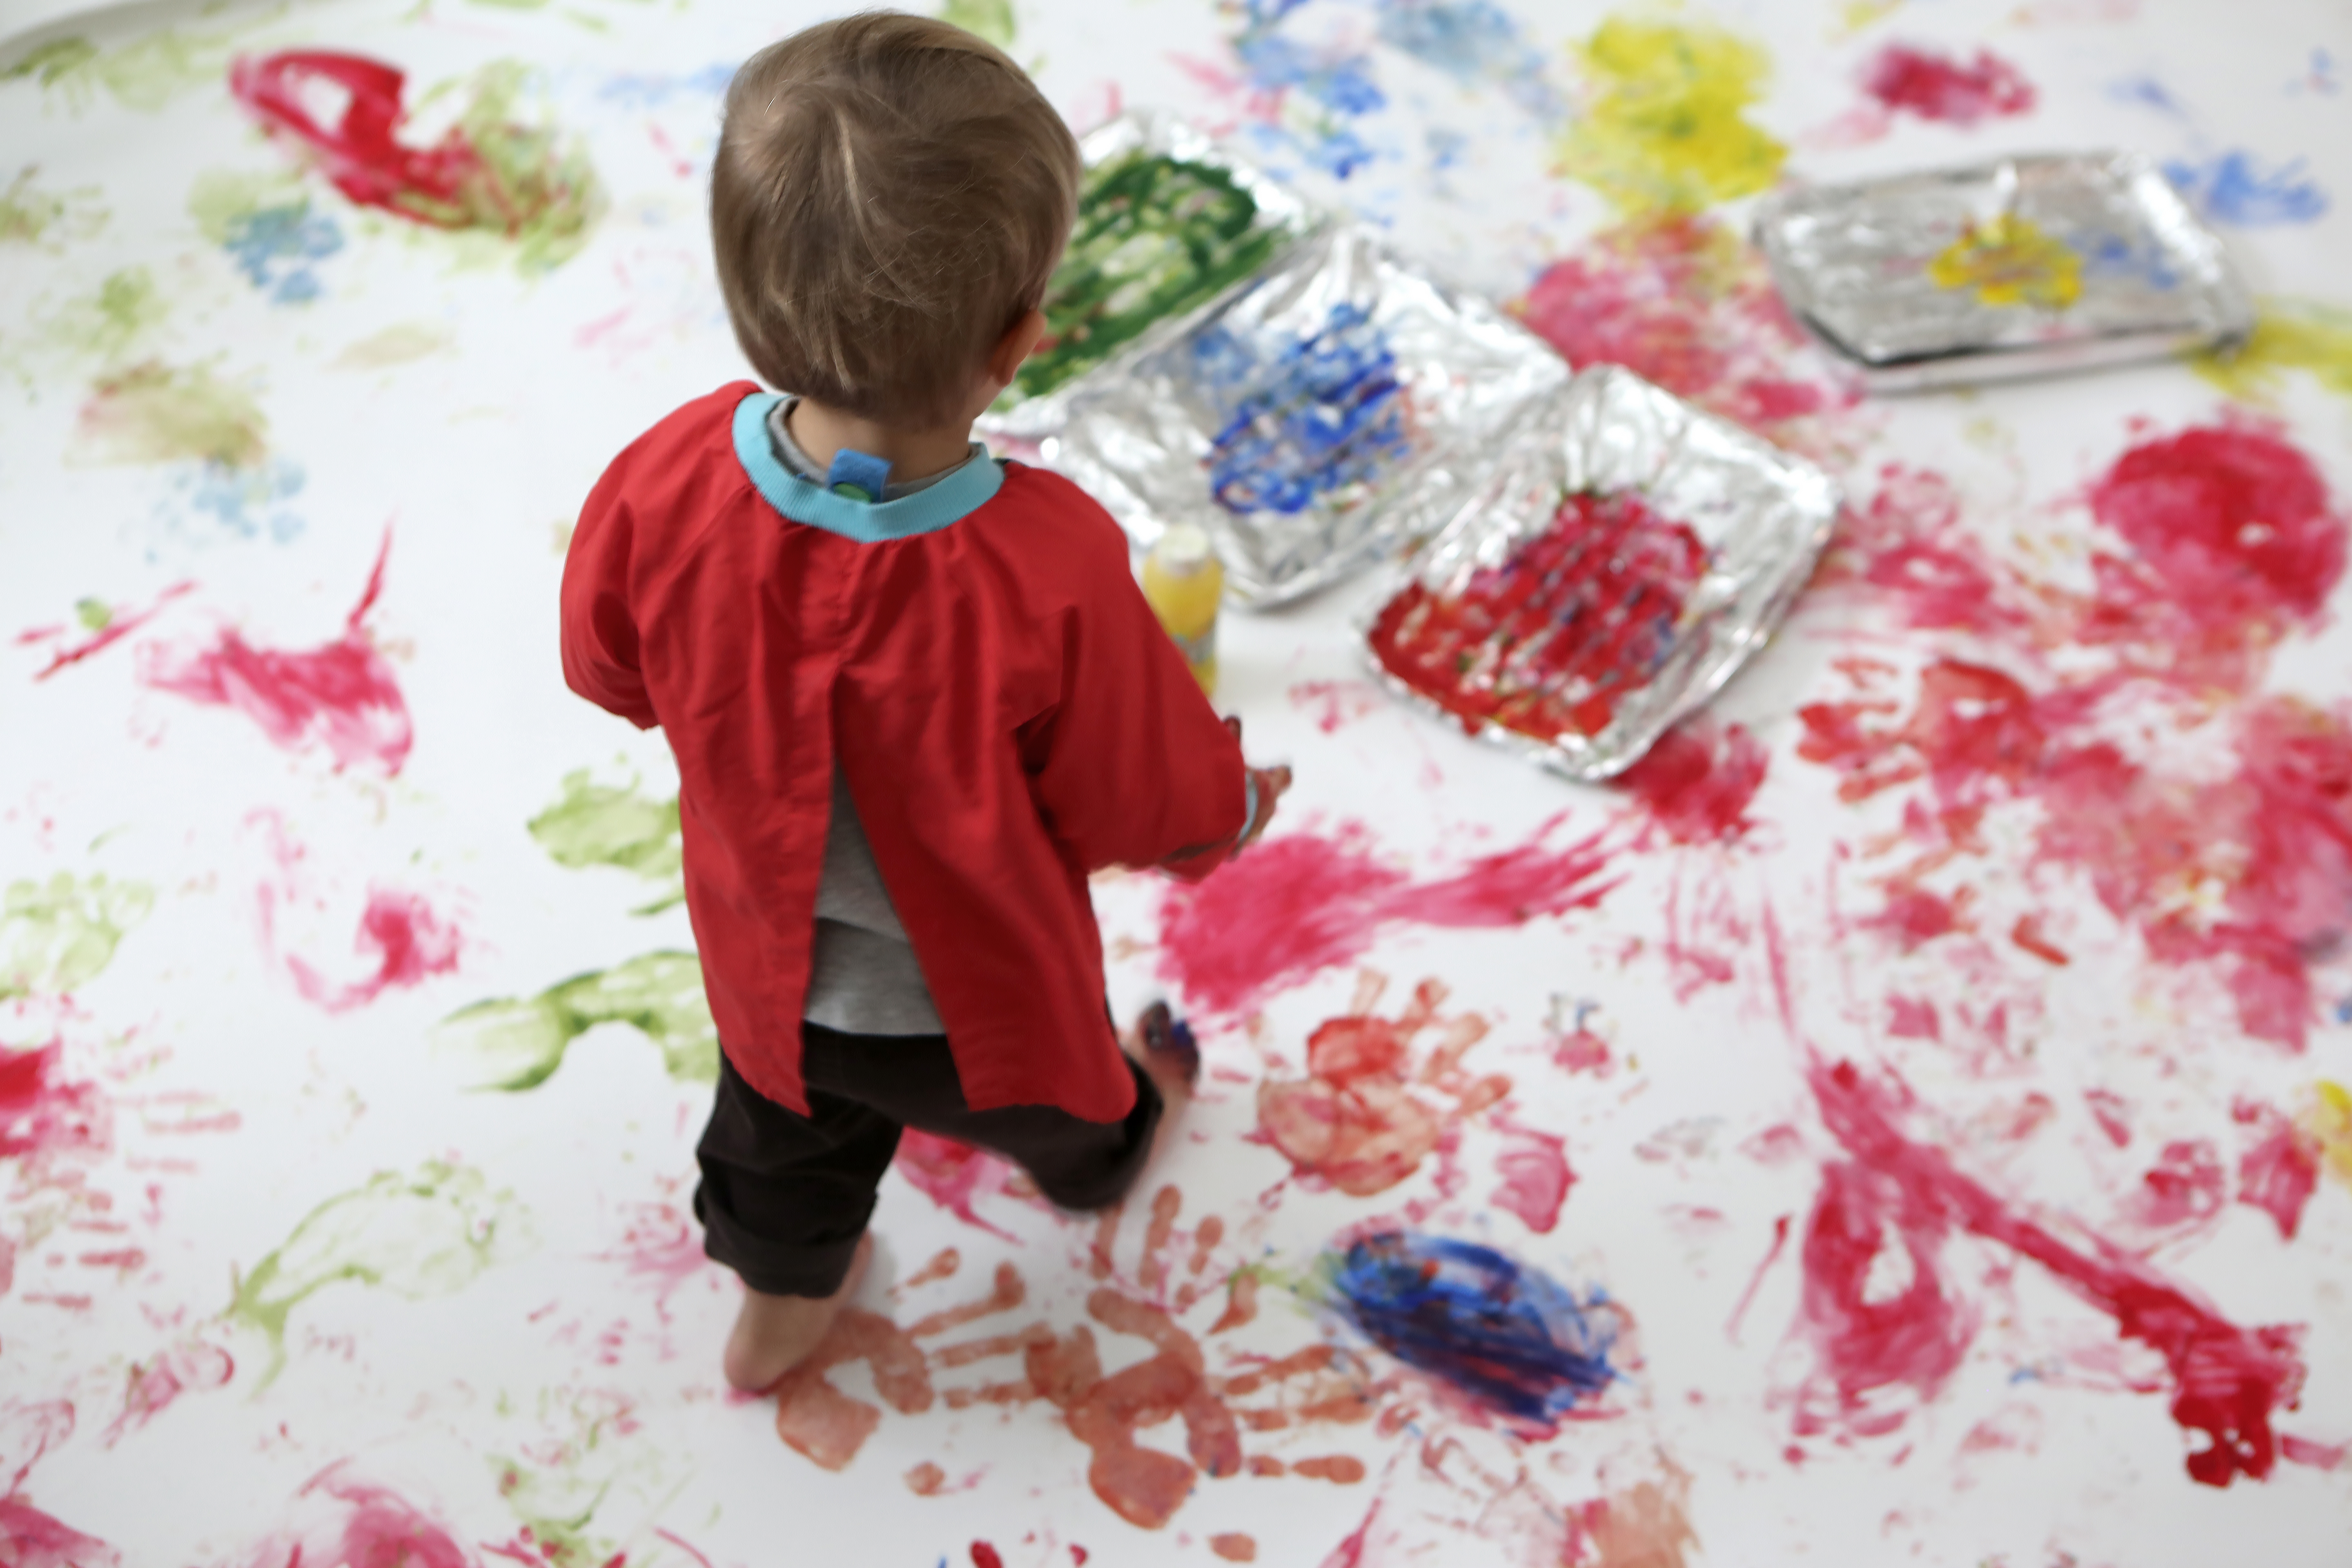 Kids Foot Hand Painting Free Stock Photos Life of Pix